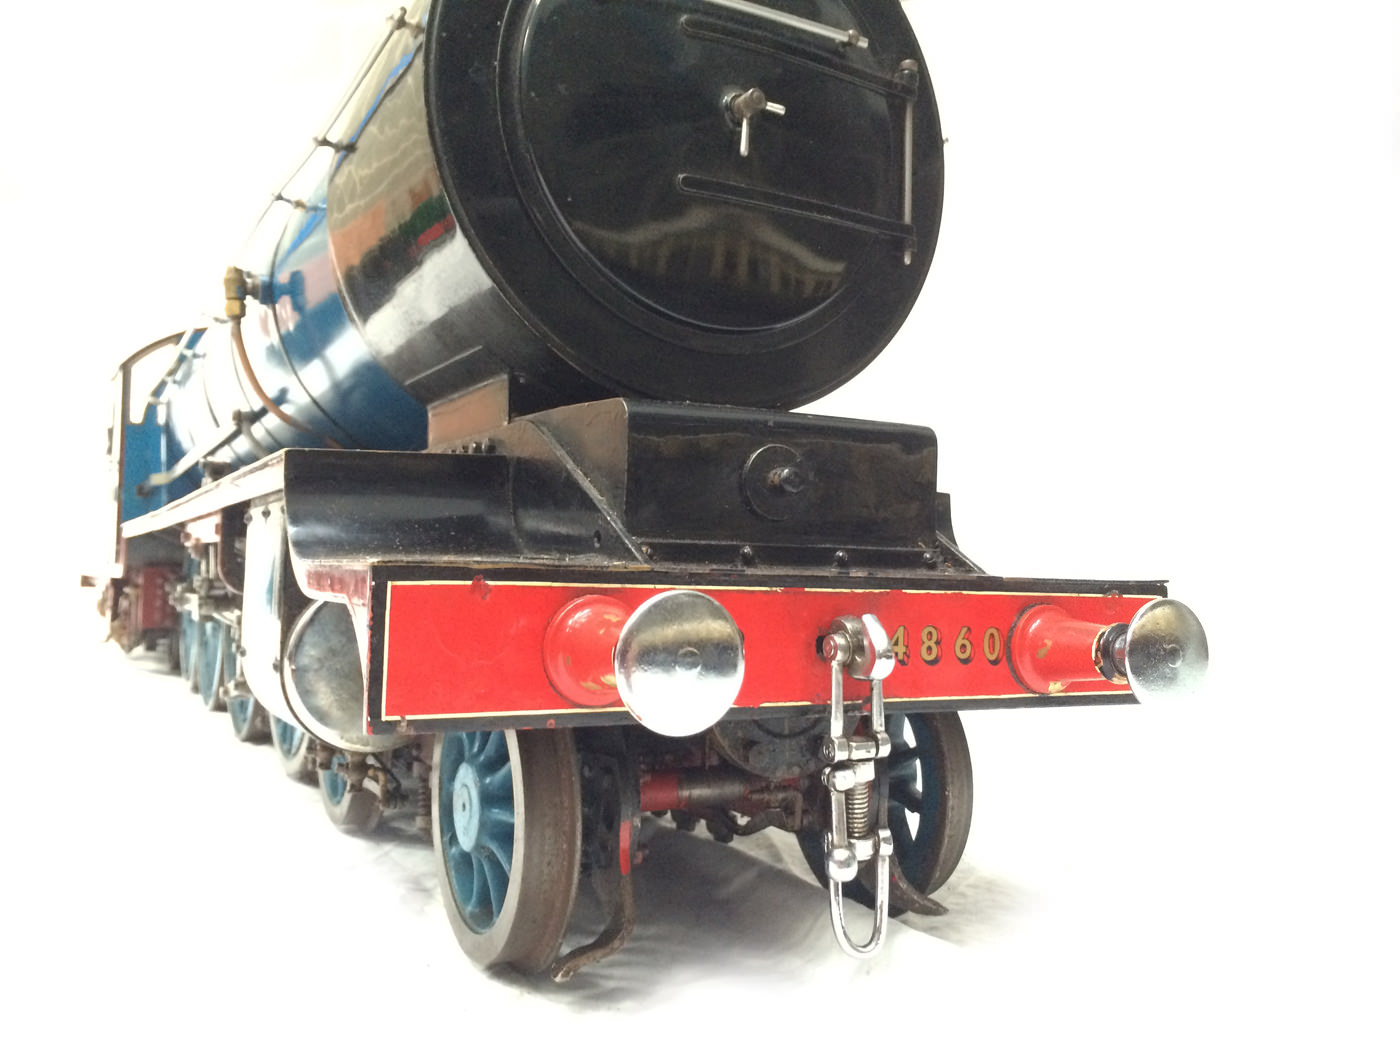 test 5 gauge maskelyne live steam locomotive for sale 09